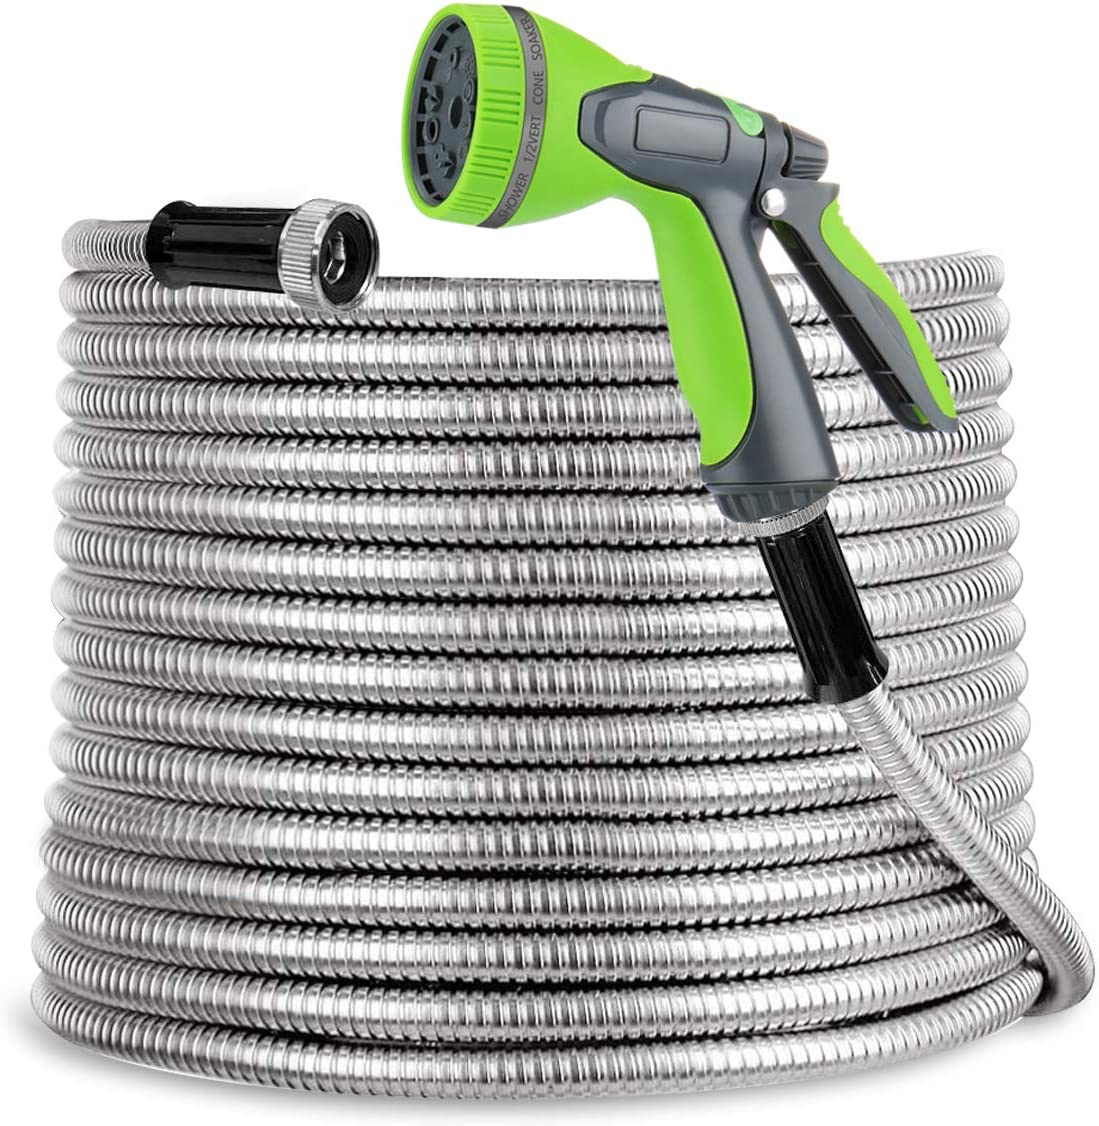 SweetSpace Metal Garden Hose 100ft 304 Stainless Steel with 10 Pattern Spray Nozzle for Kink Free&Tangle Free, Flexible Water Hose, Lightweight and Durable